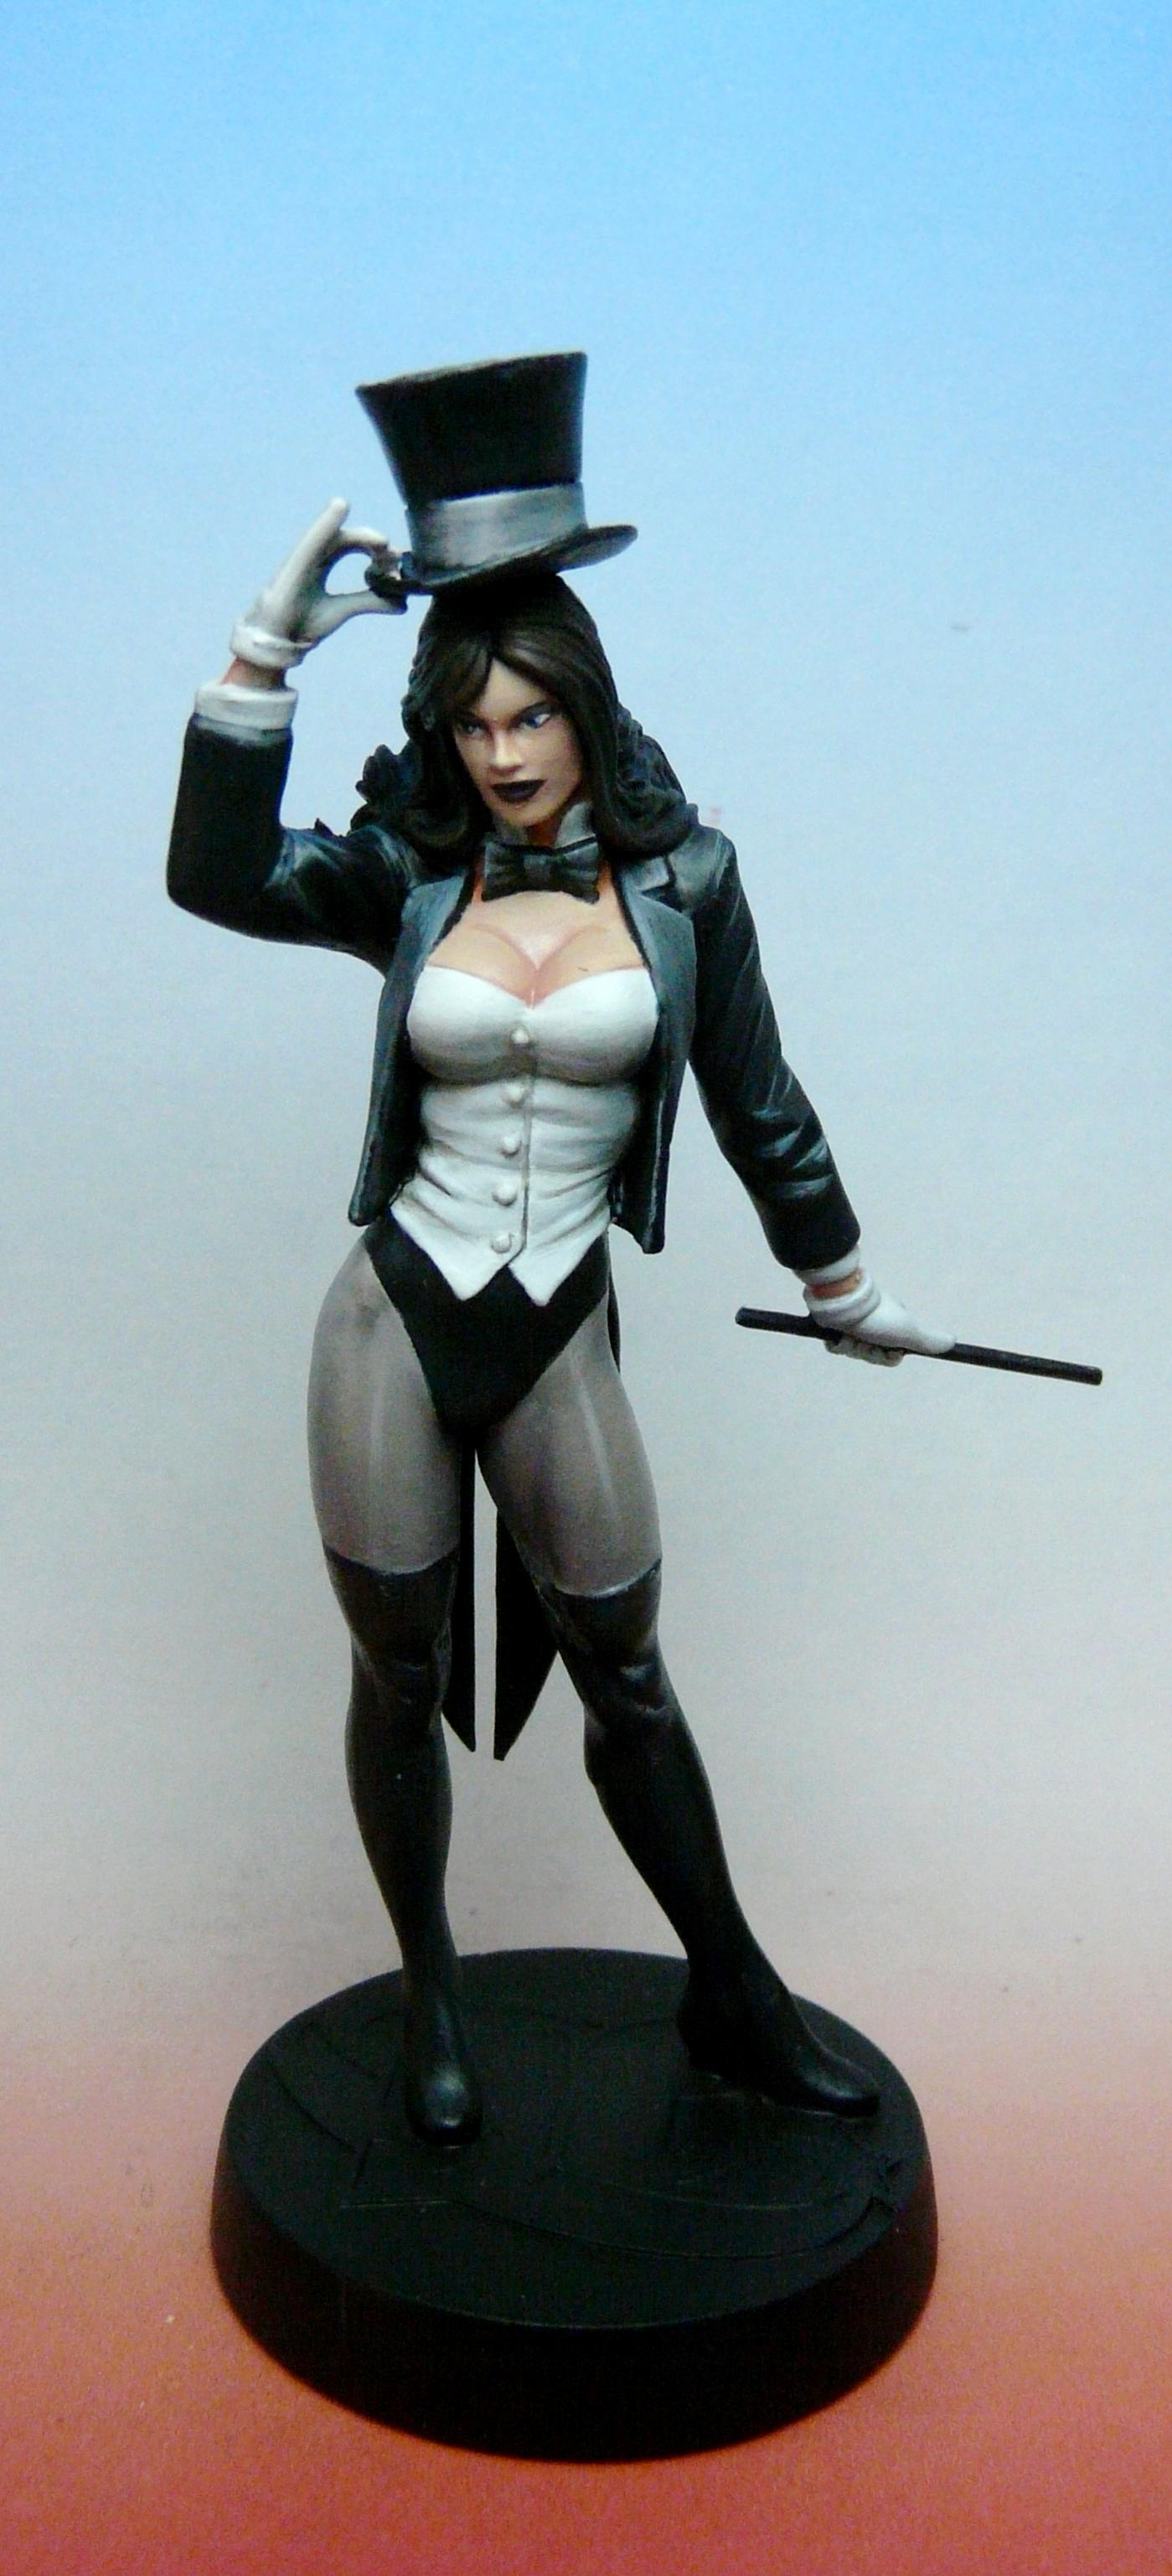 Comics, Dc, Justice League, Mage, Superhero, Wizard, Zatanna